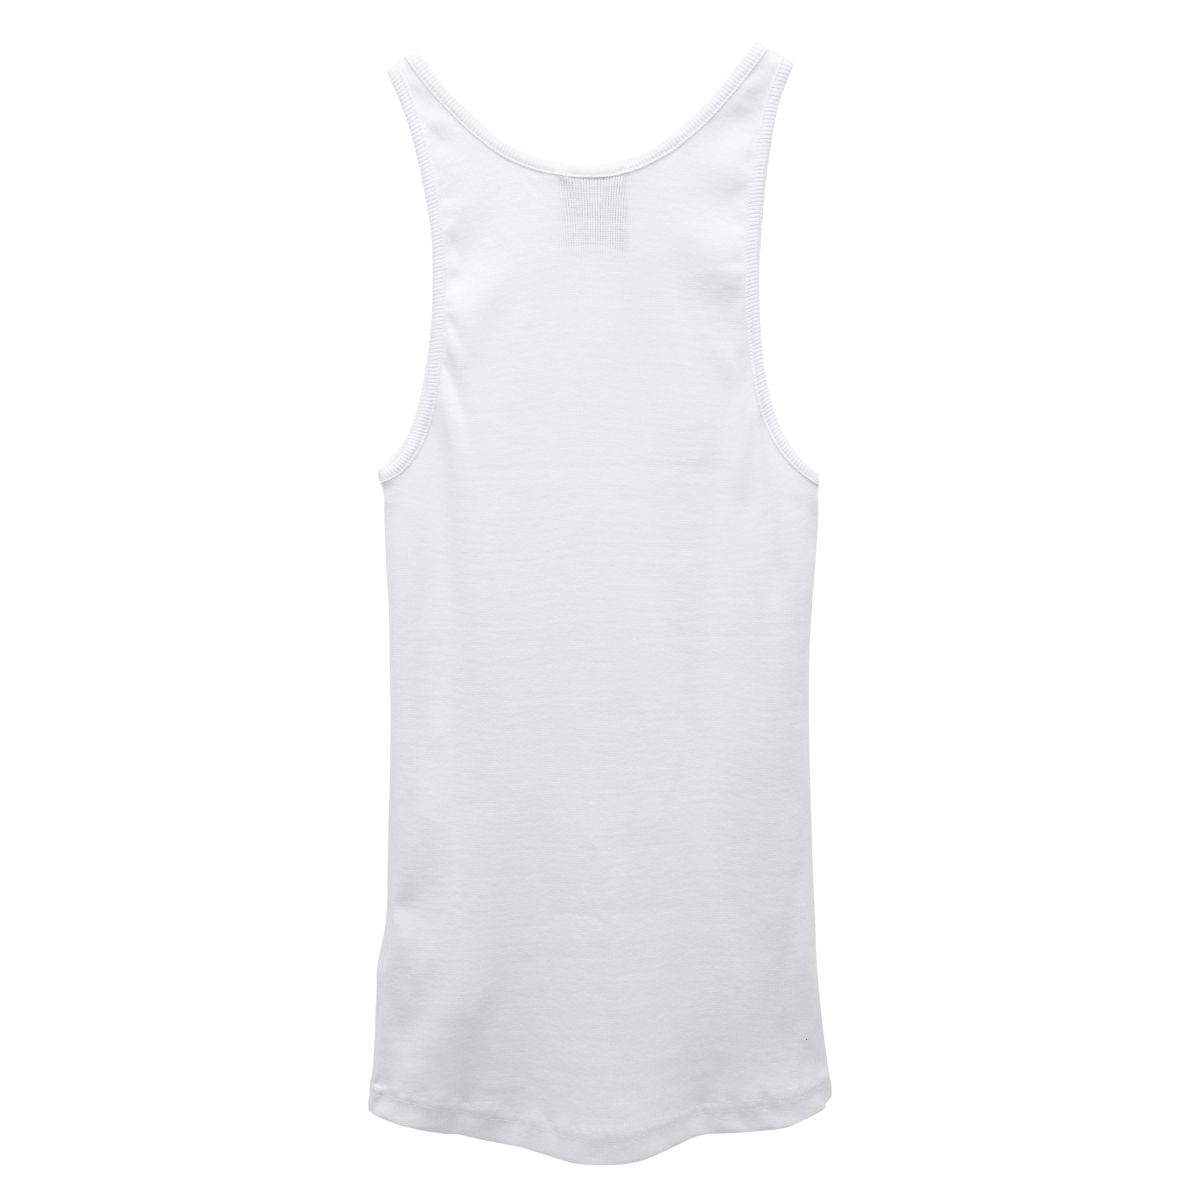 adidas Originals by 032c TANK TOP / WHITE